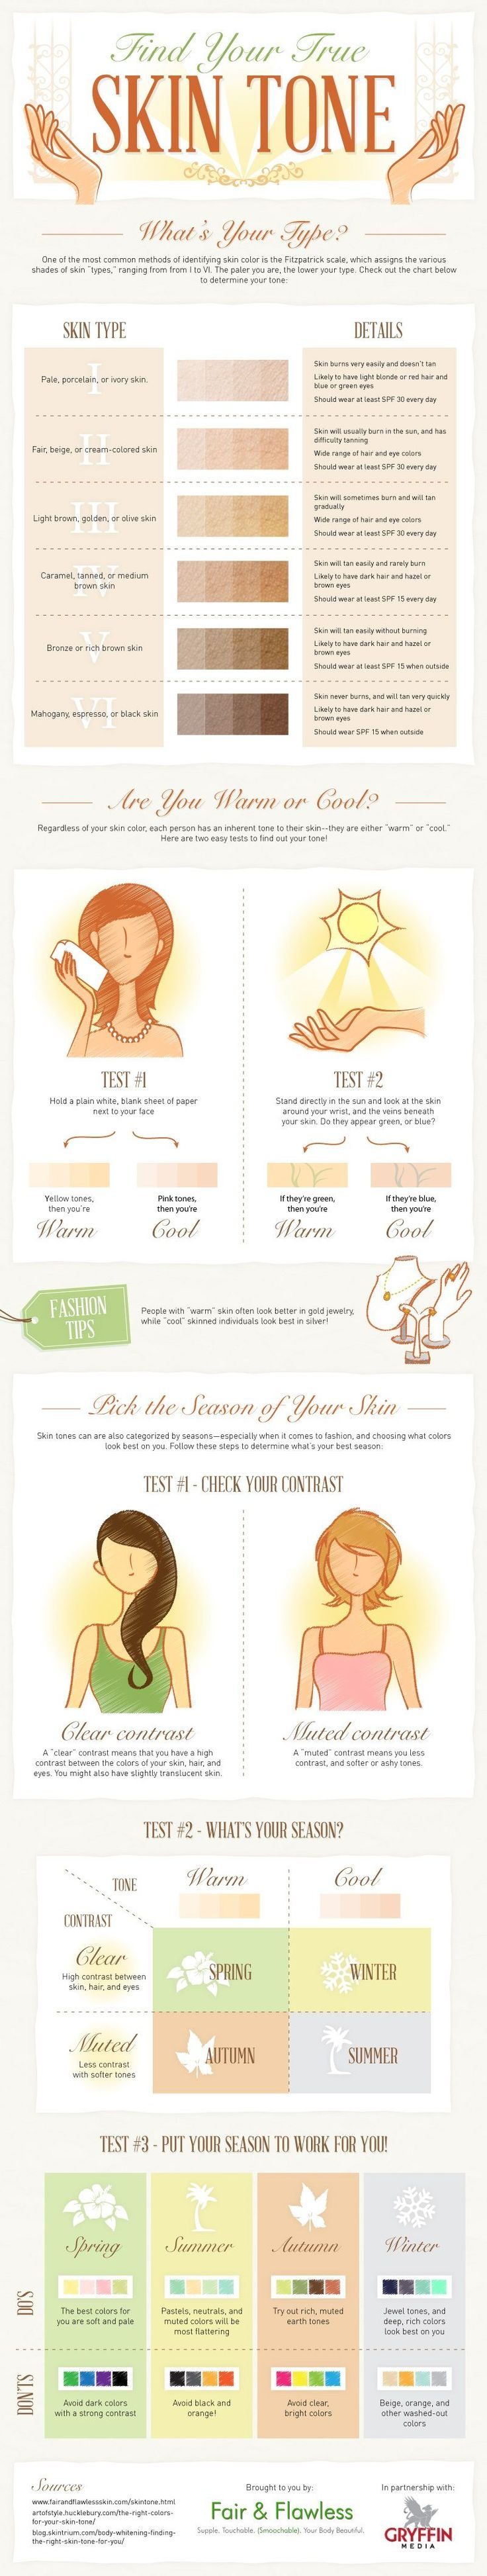 How To Find Your Skin Tone ...... This infographic from fair and flawless shows you step by step how to find your skin tone. Once you've found it, you'll then be able to determine what colors look best on you, and which you'd be better steering clear of......Kur <3 <3